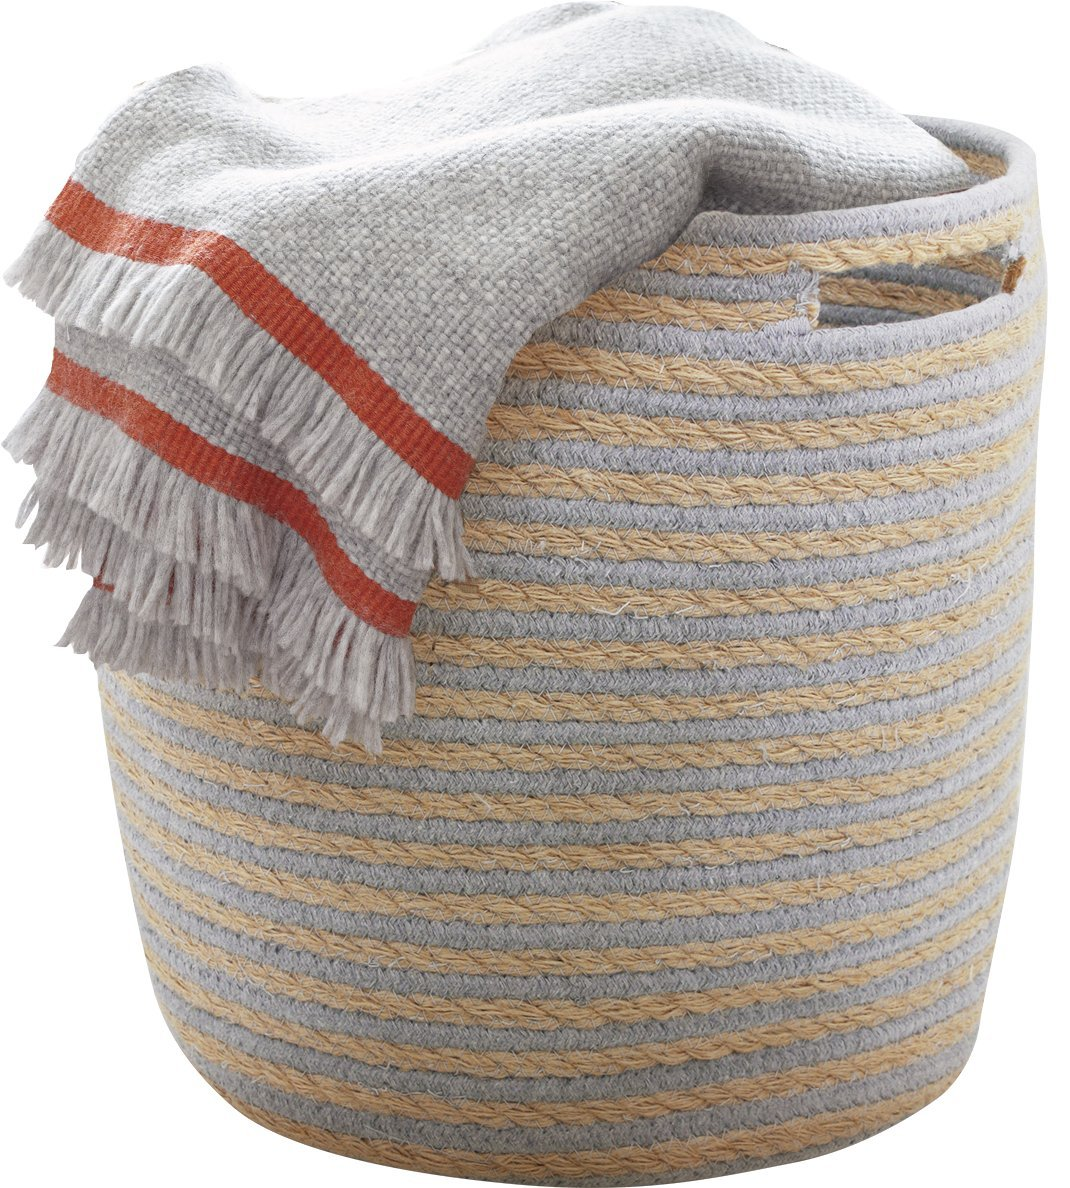 LA JOLIE MUSE Storage Baskets Nursery Toy Woven Basket, Dorm Room Cotton Rope Linen Organizer with Handle,14